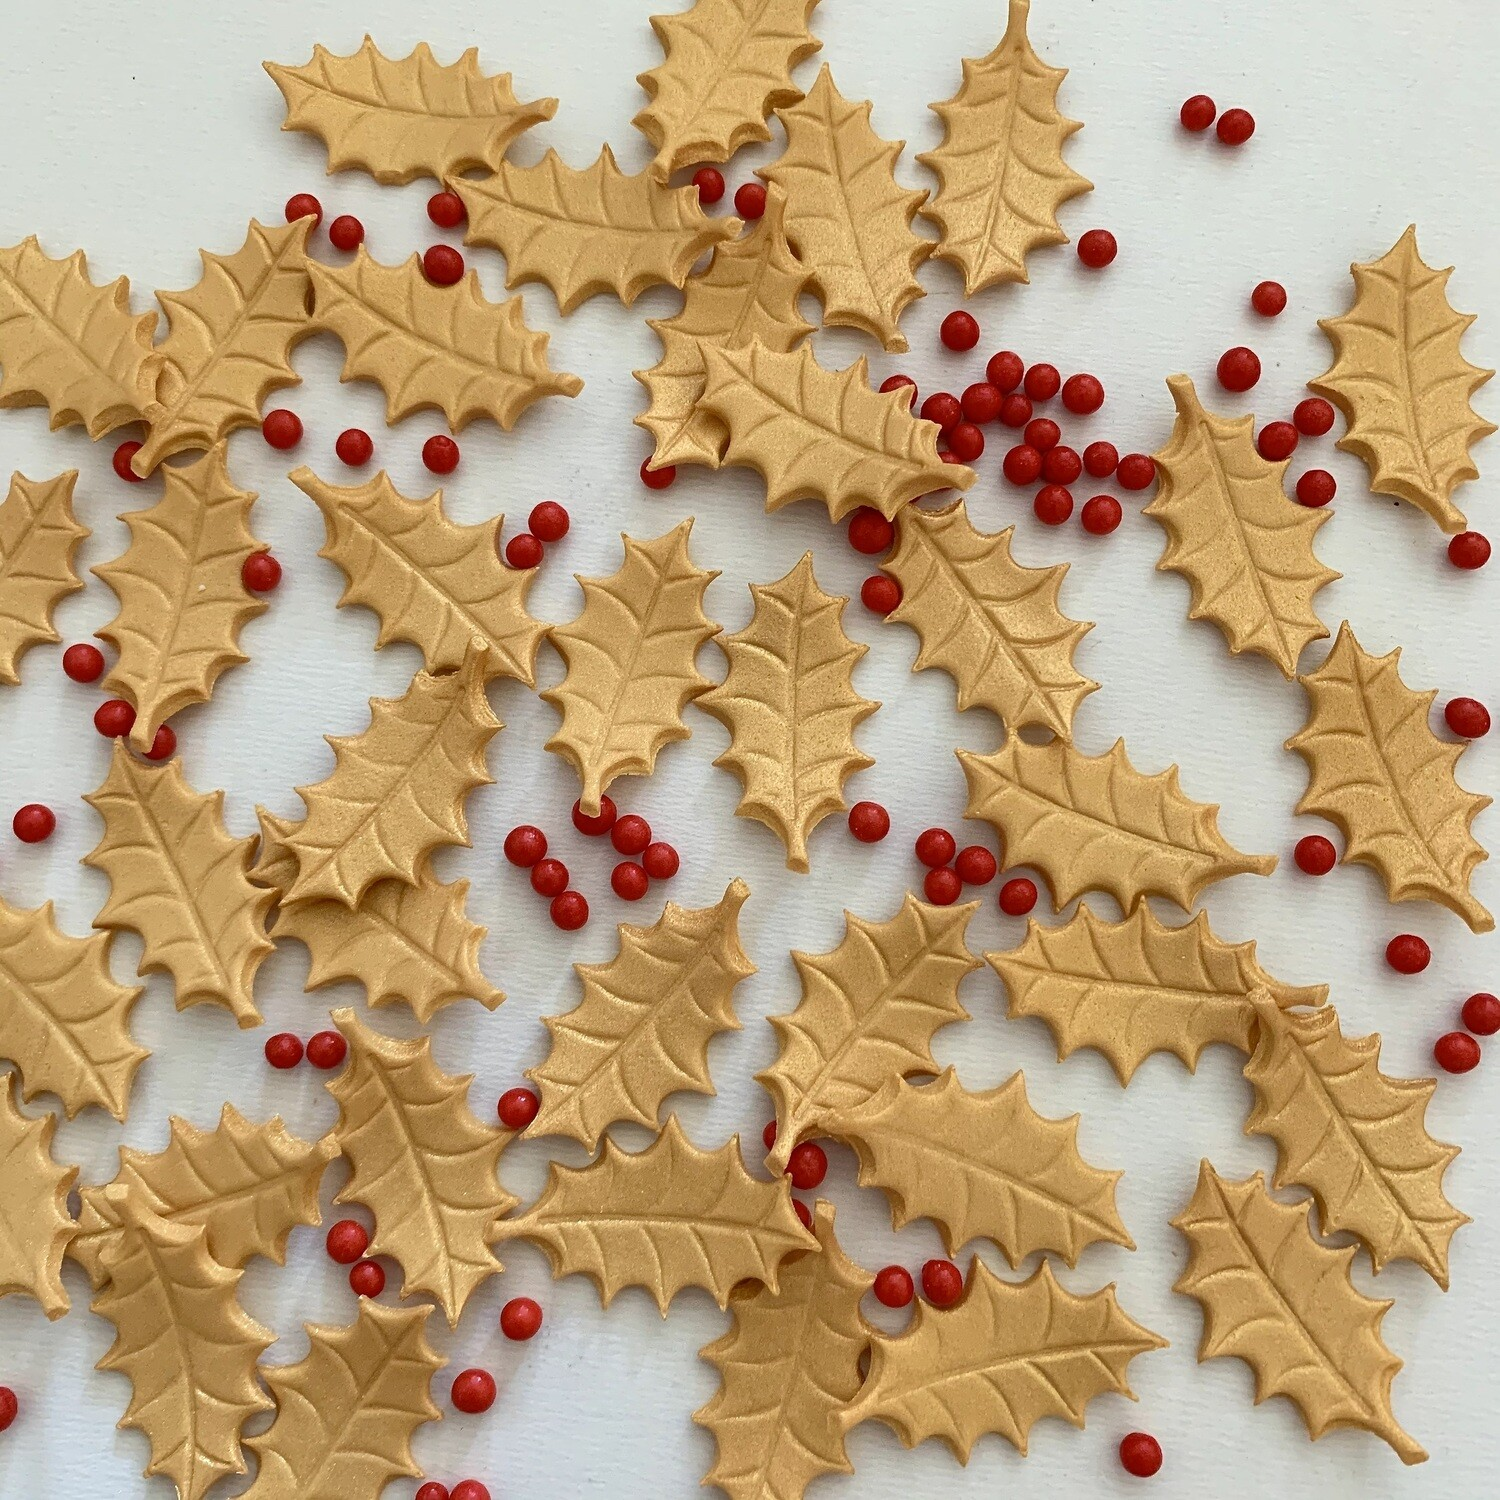 Gold Holly Leaves & Berries